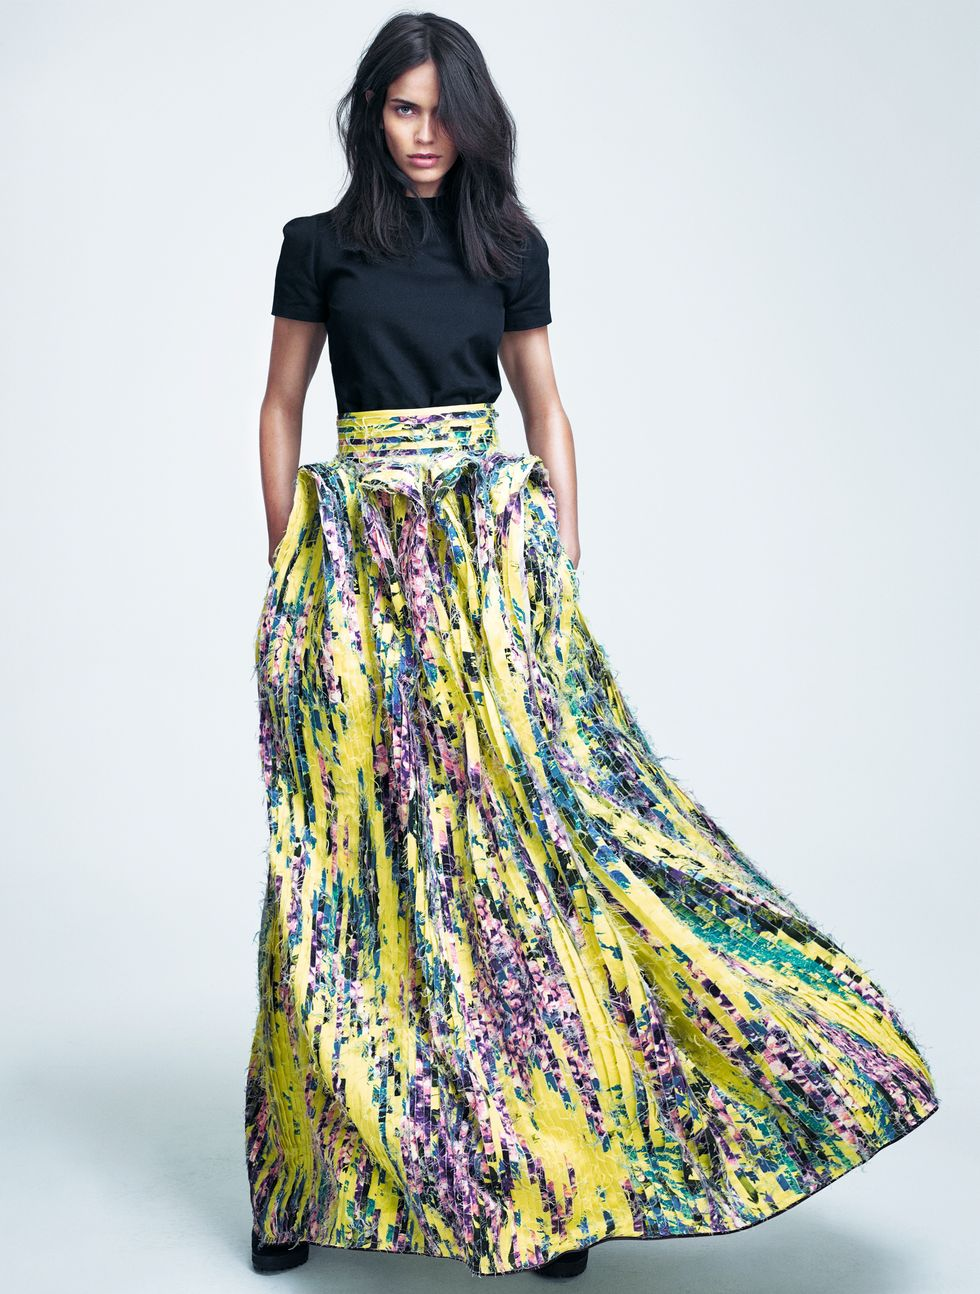 H&M's Upcoming Eddy Anemian Collection Is Crazy Chic